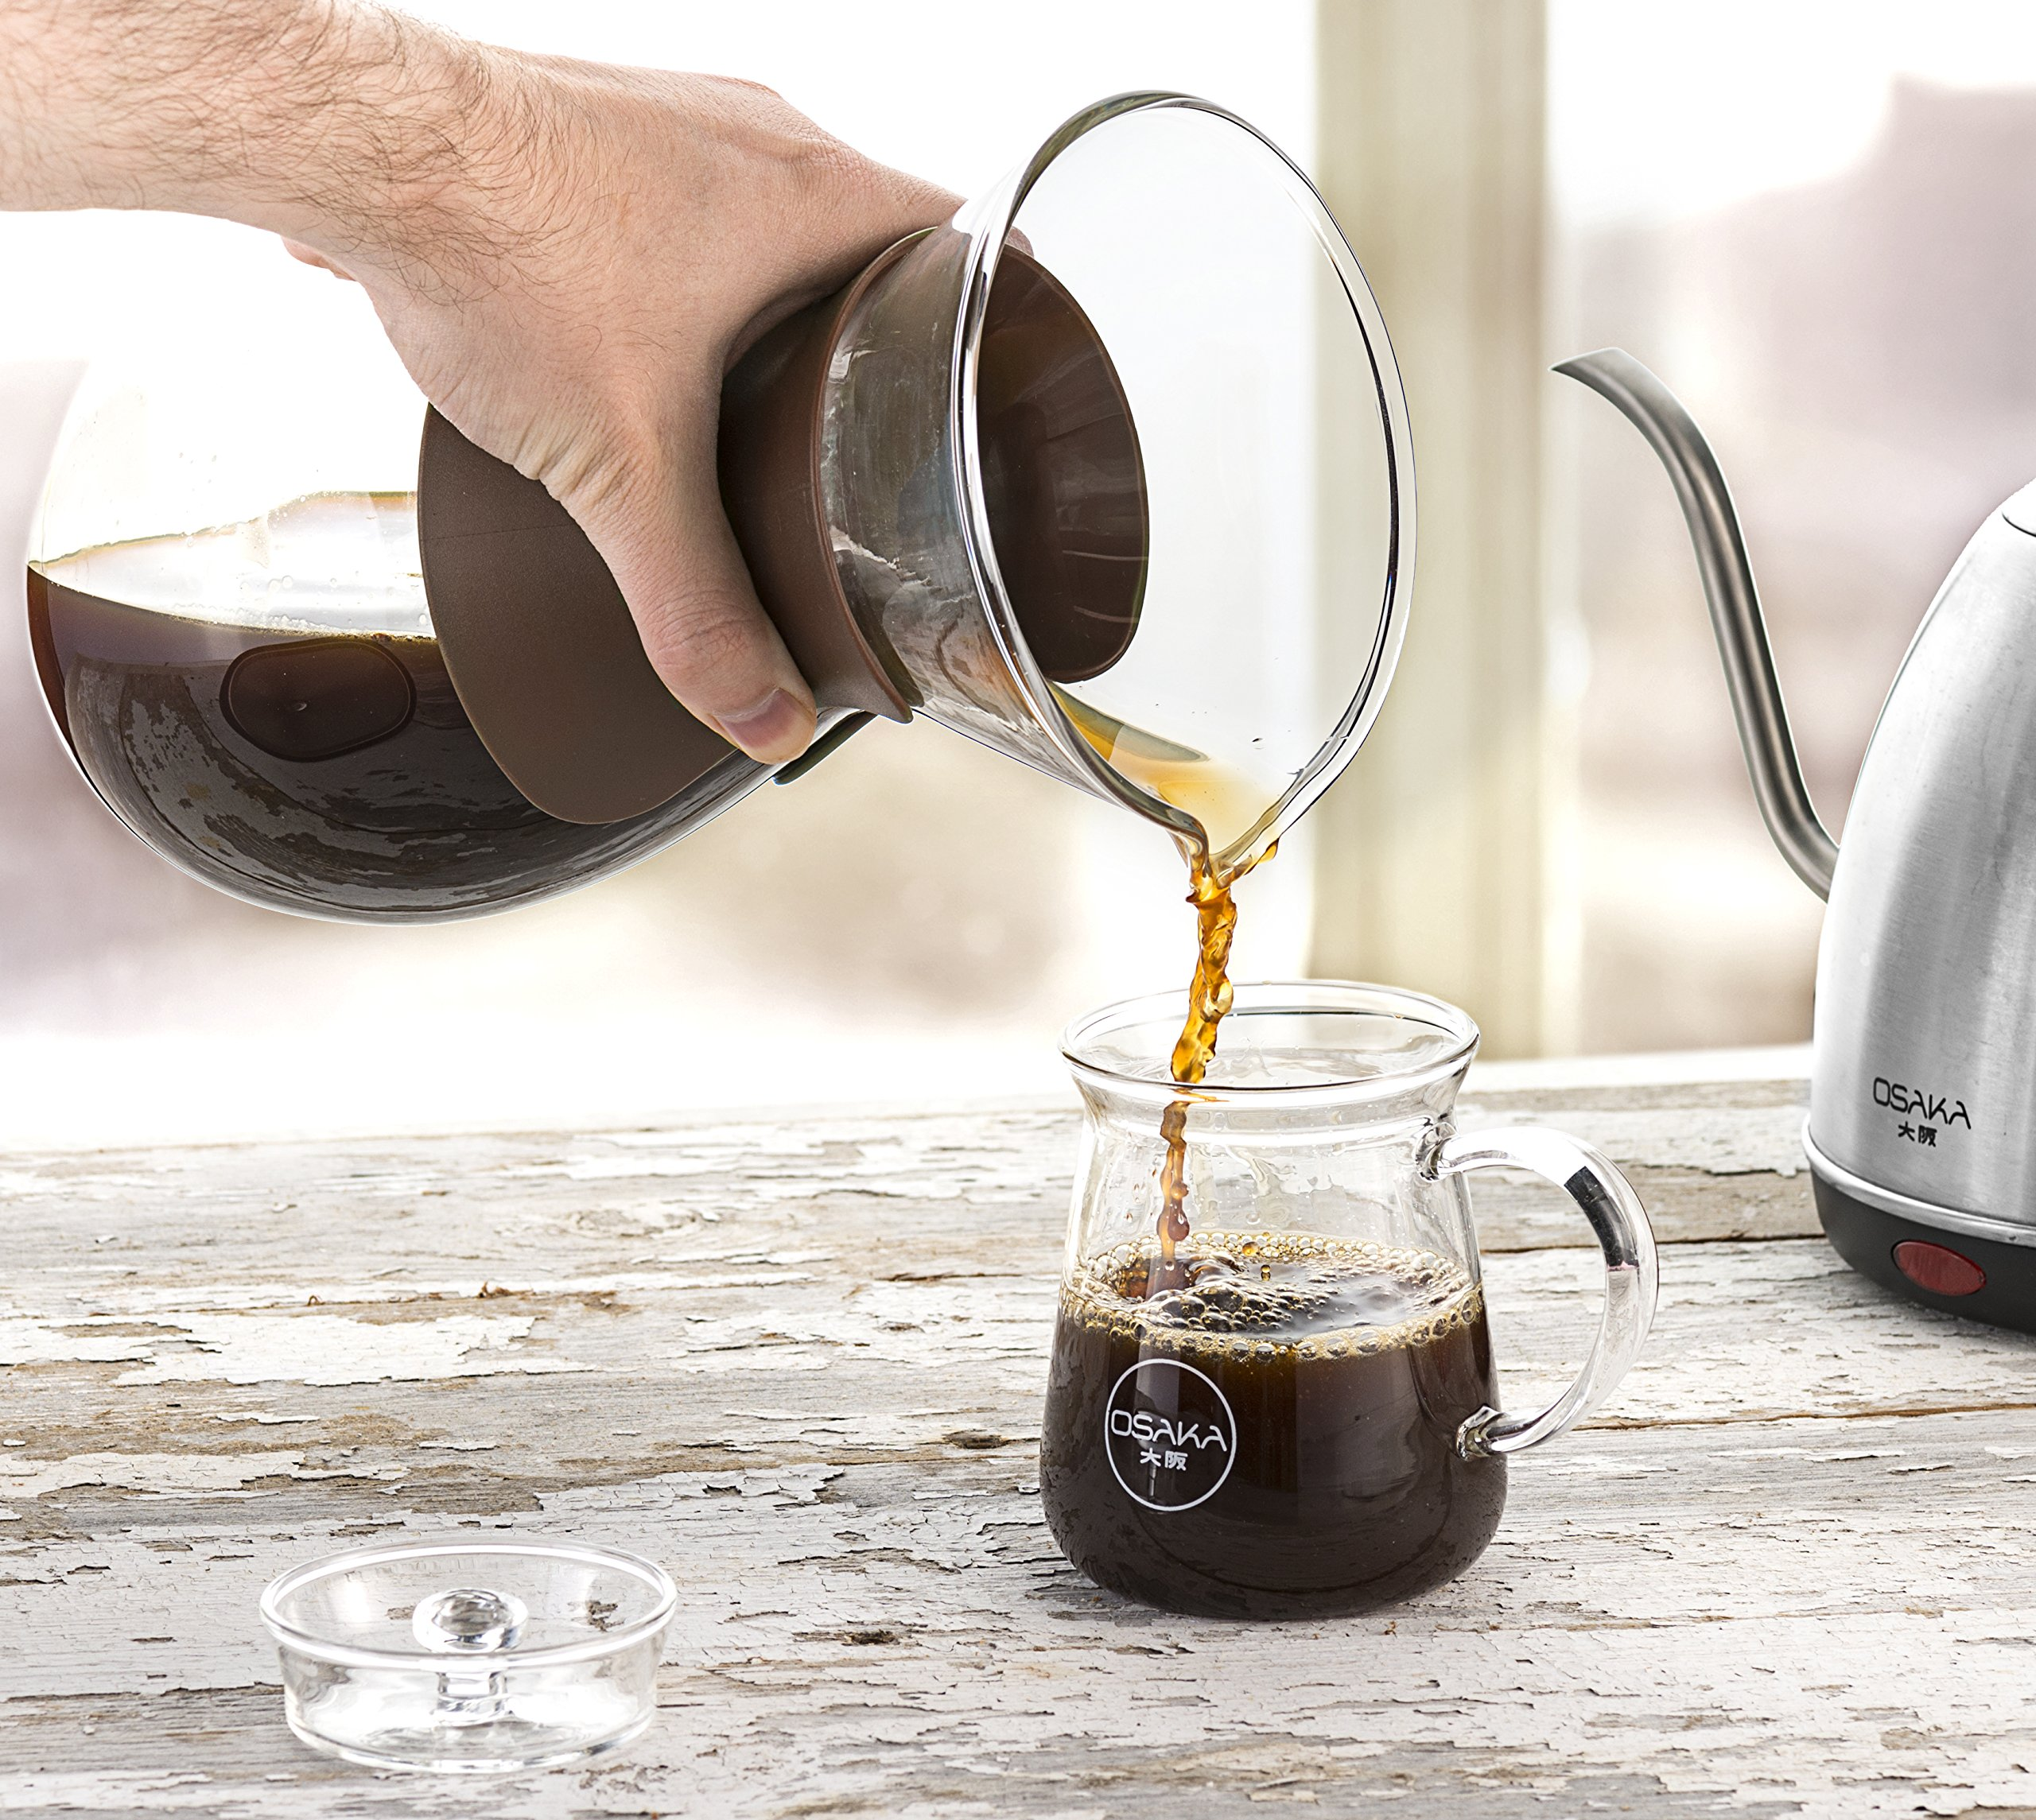 Osaka Pour Over Coffee Maker with Reusable Stainless Steel Drip Filter, 37 oz (7-Cup) Glass Carafe and Lid 'Senso-JI', Brown by Actor (Image #6)